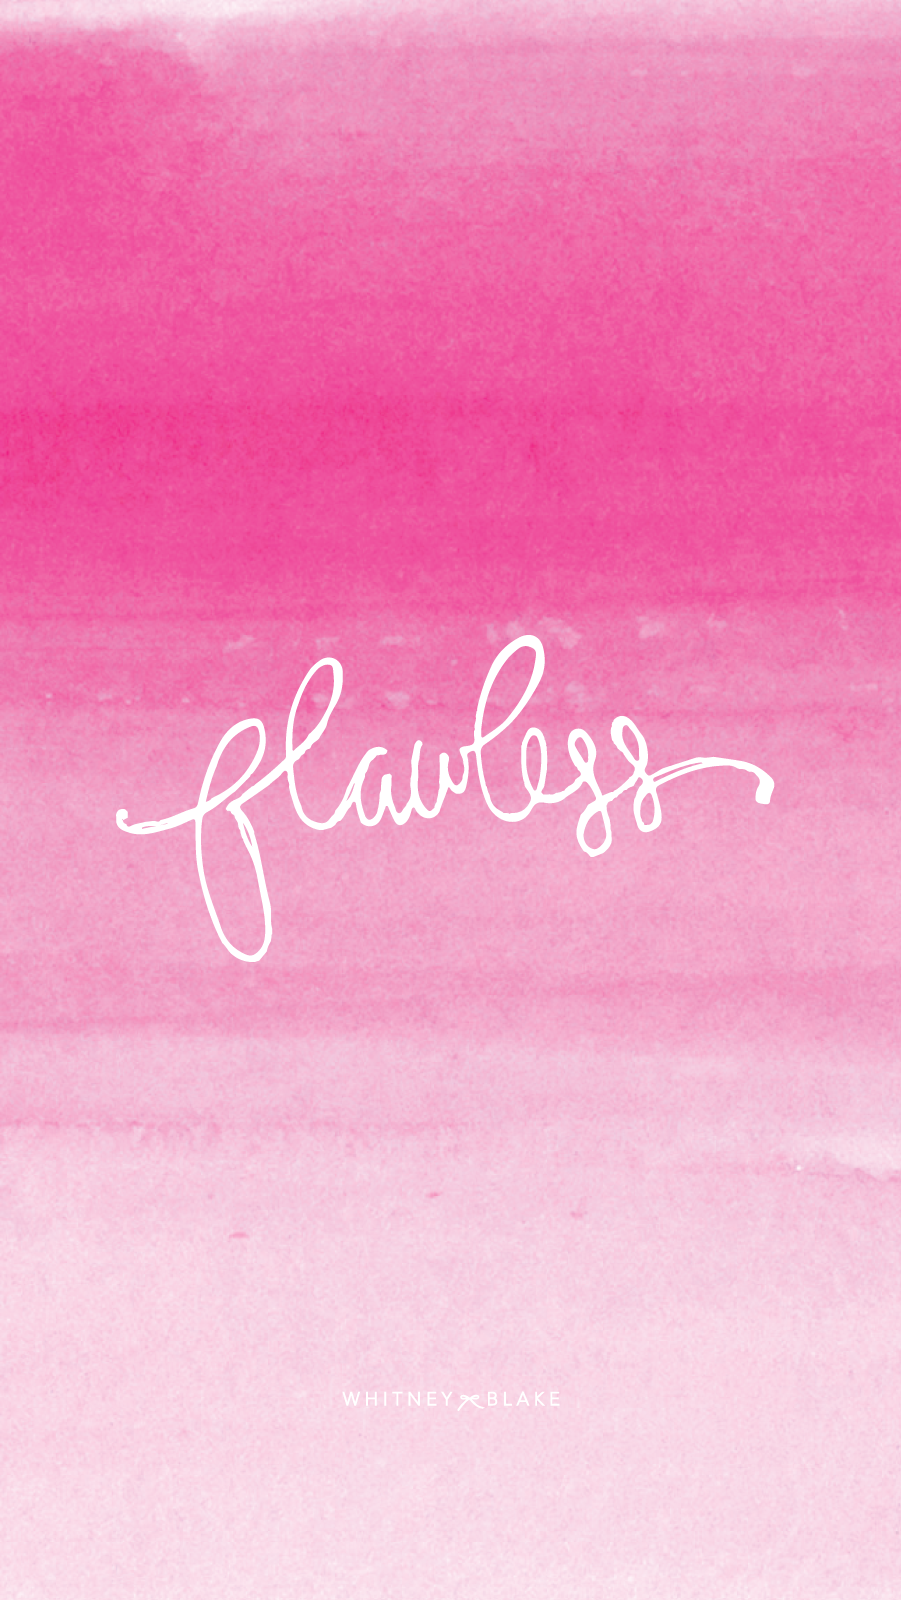 Flawless (Scott Boss, 1385.98 Kb)